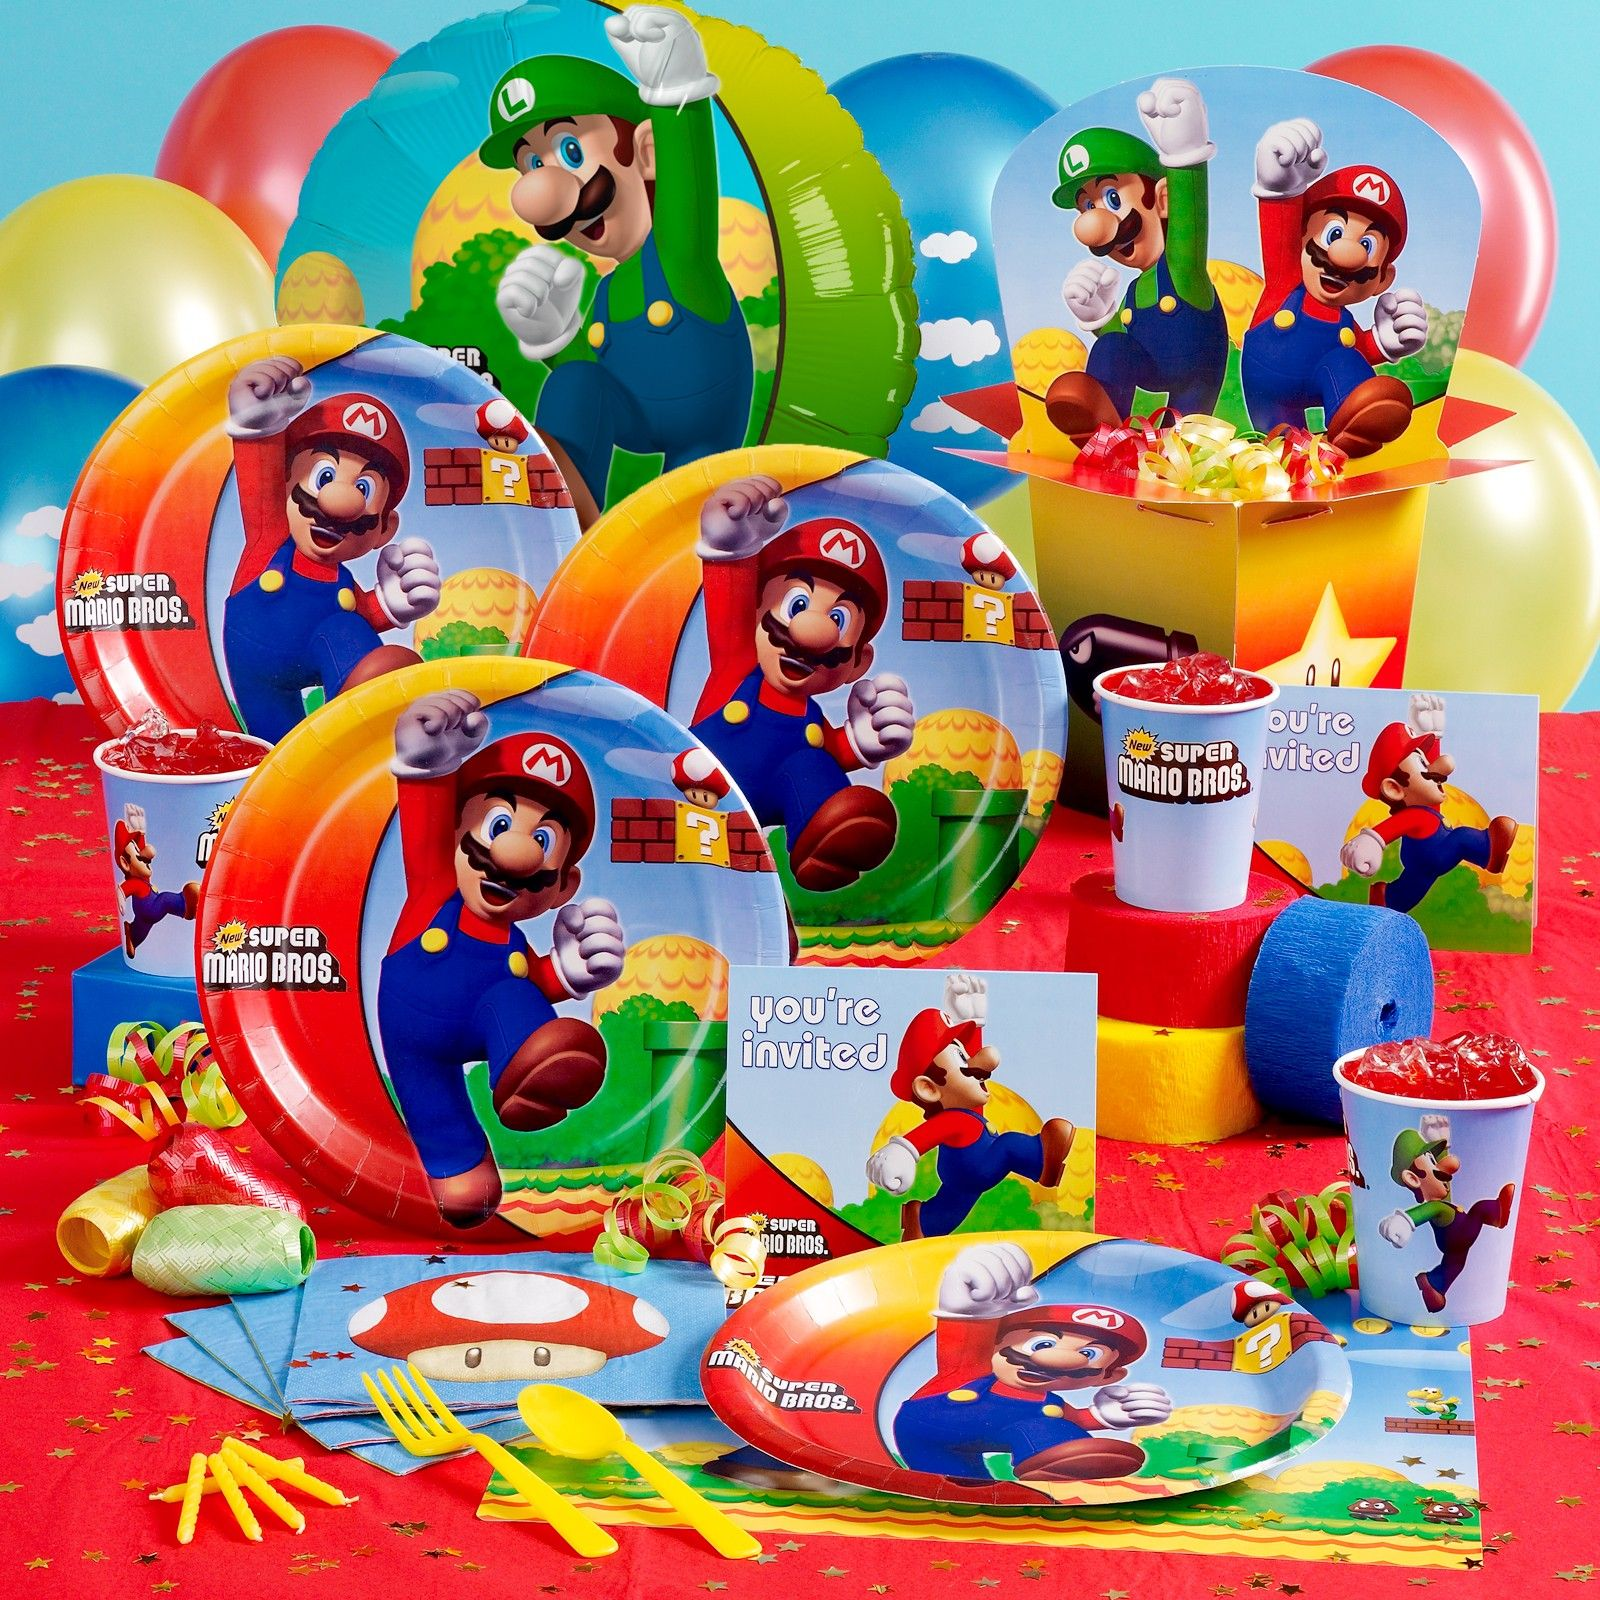 Mario Brothers Party Ideas Features Beautiful Colorful Display And Provide